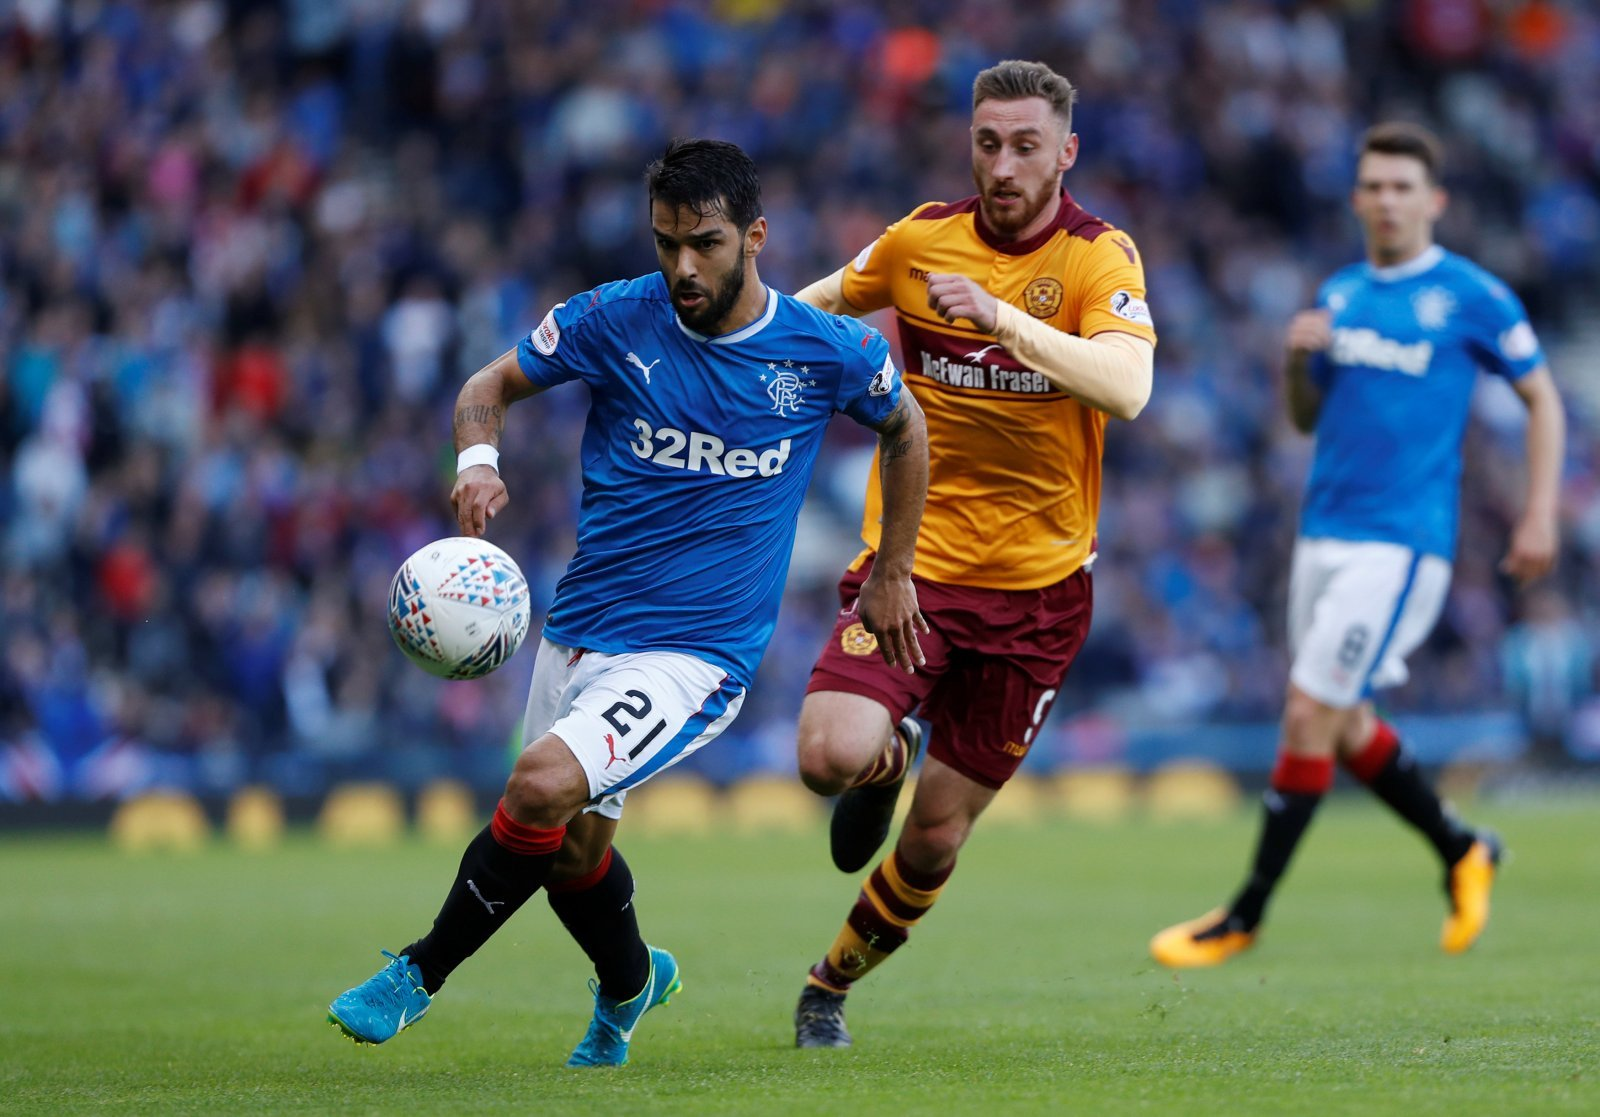 Rangers fans on Twitter have nothing but good words for Daniel Candeias